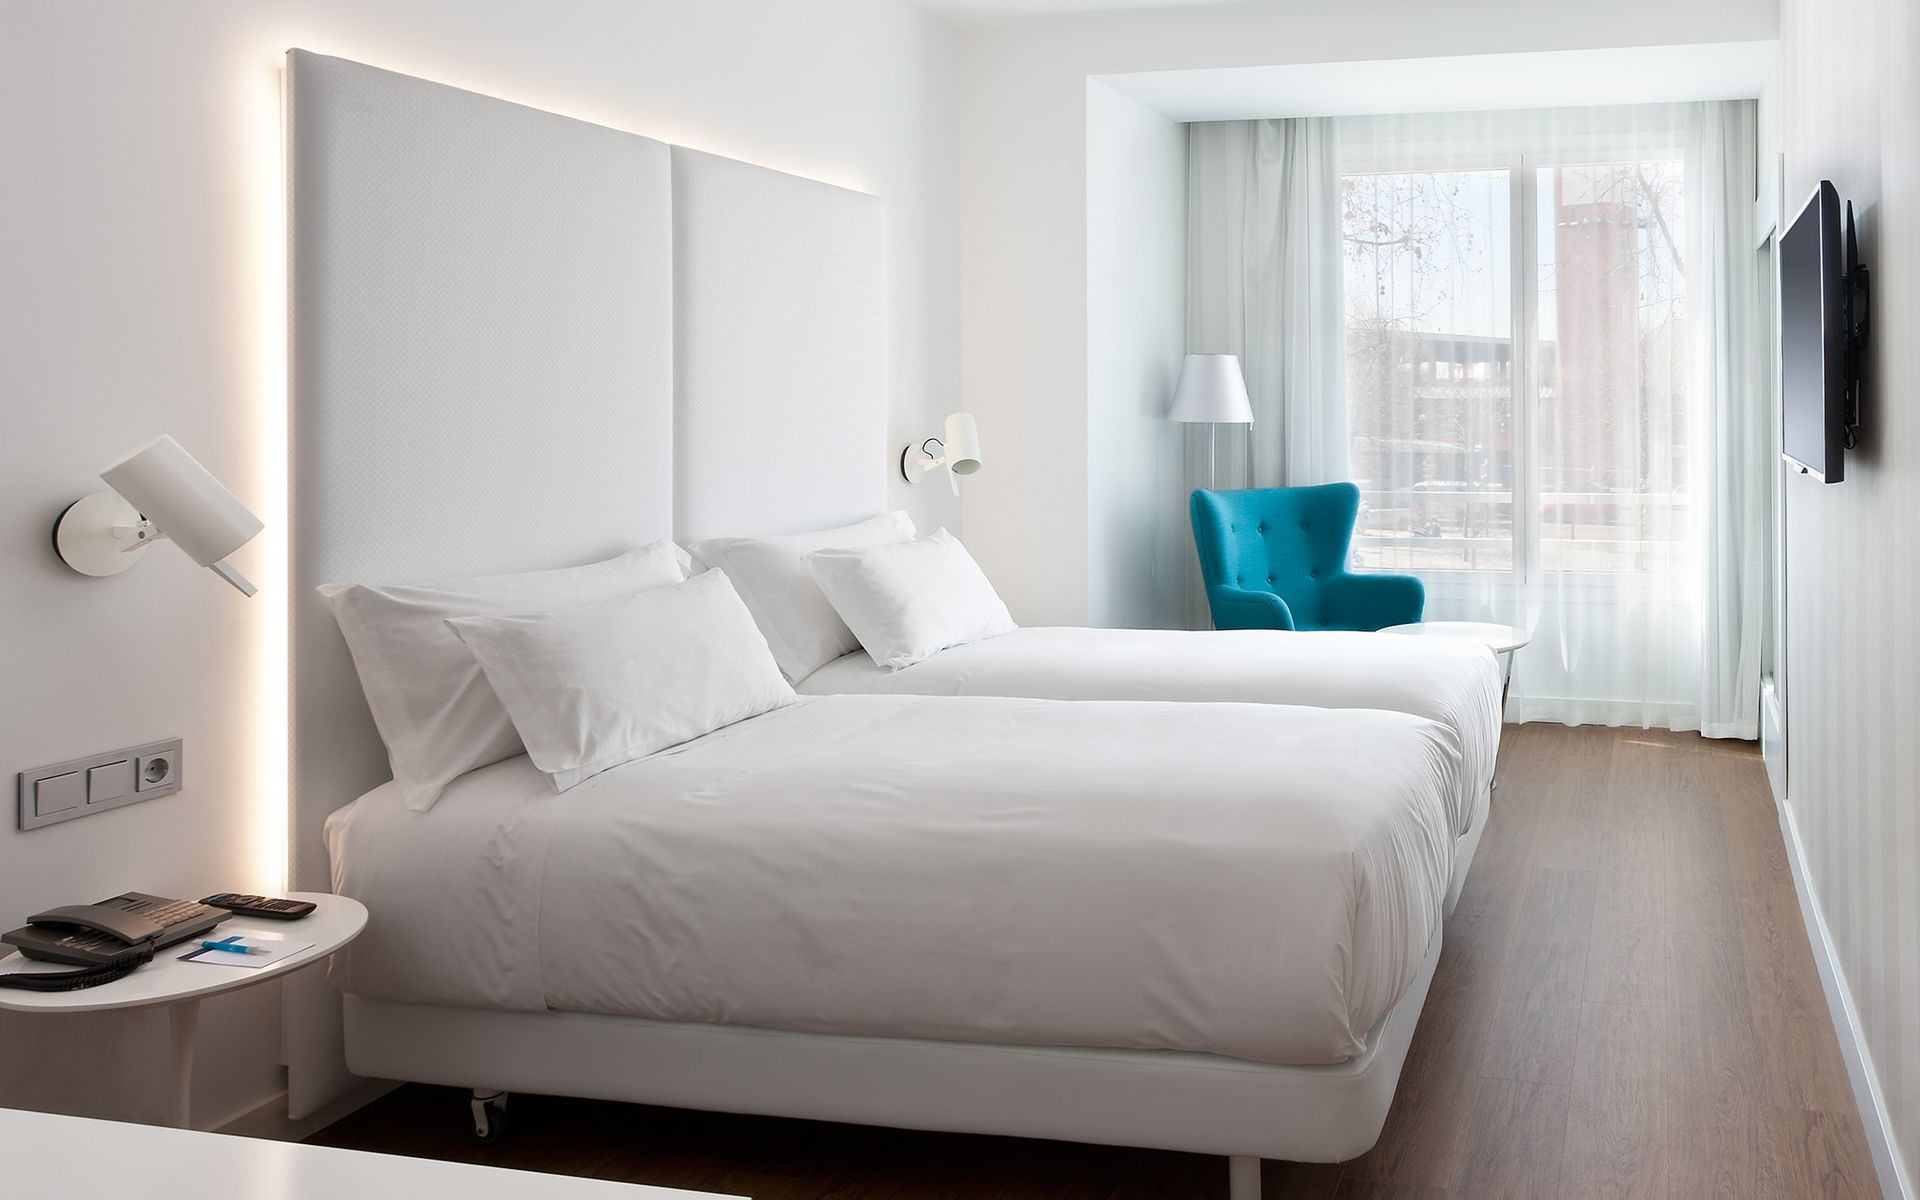 atocha chat rooms Search for hotel weare chamartin choose room type, read guest reviews, compare hotel price, and book the best hotel room with tripcom.